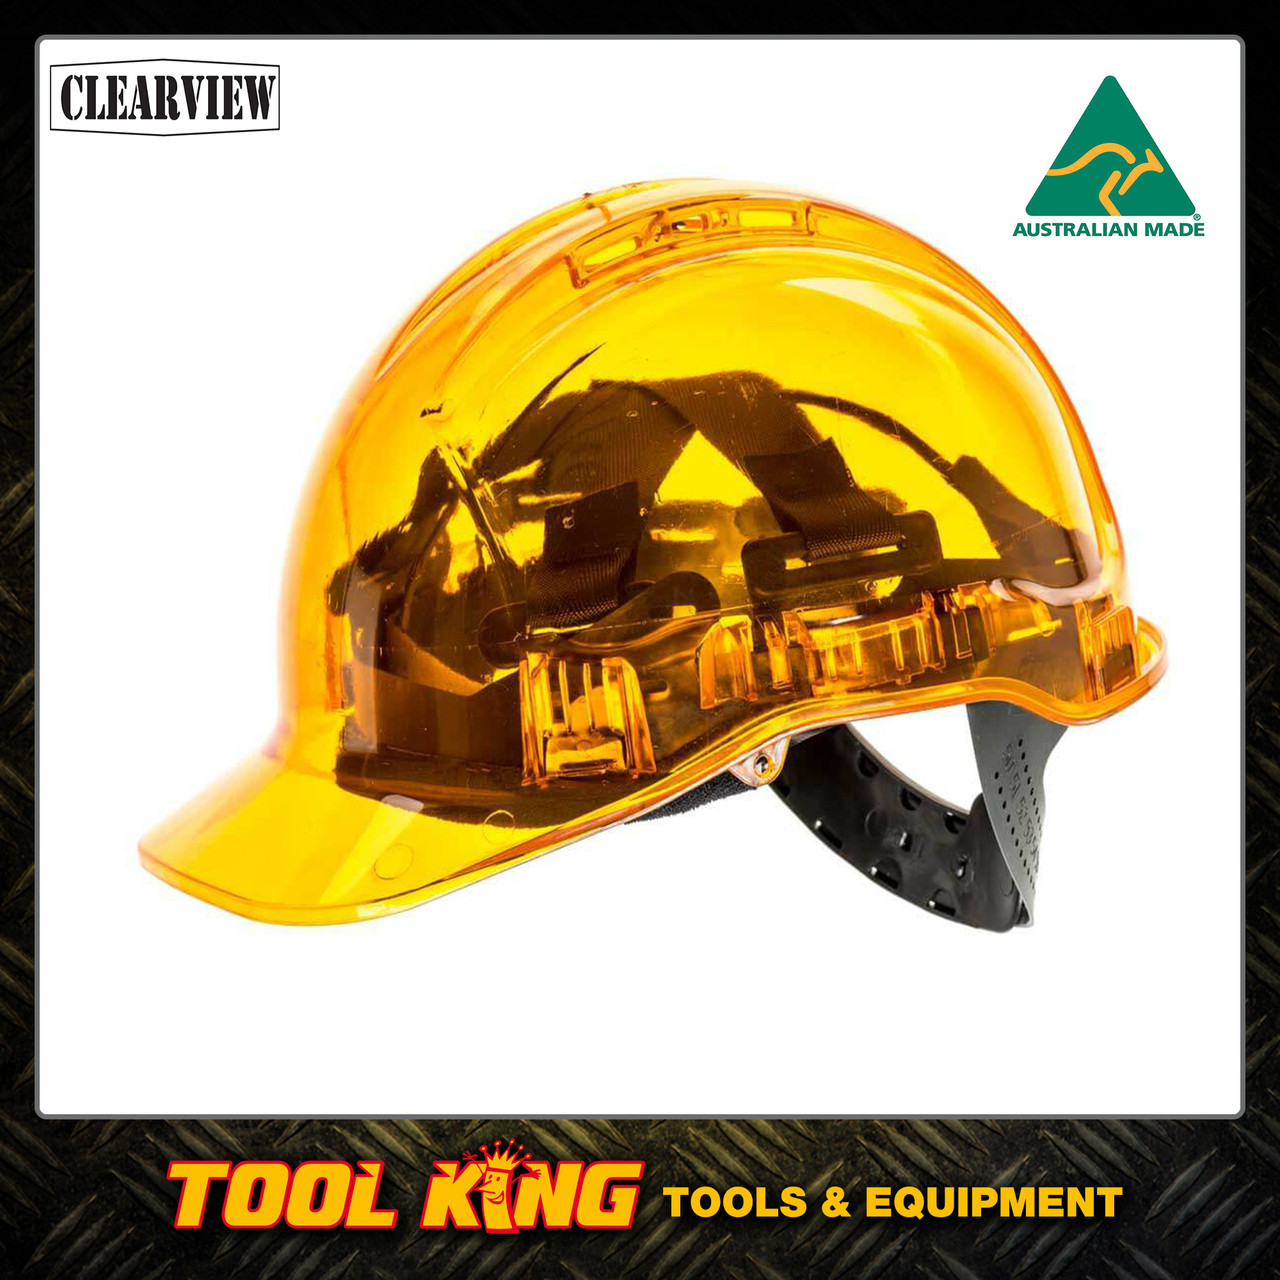 Hard Hat Clearview  vented ORANGE COLOUR  Australian Made